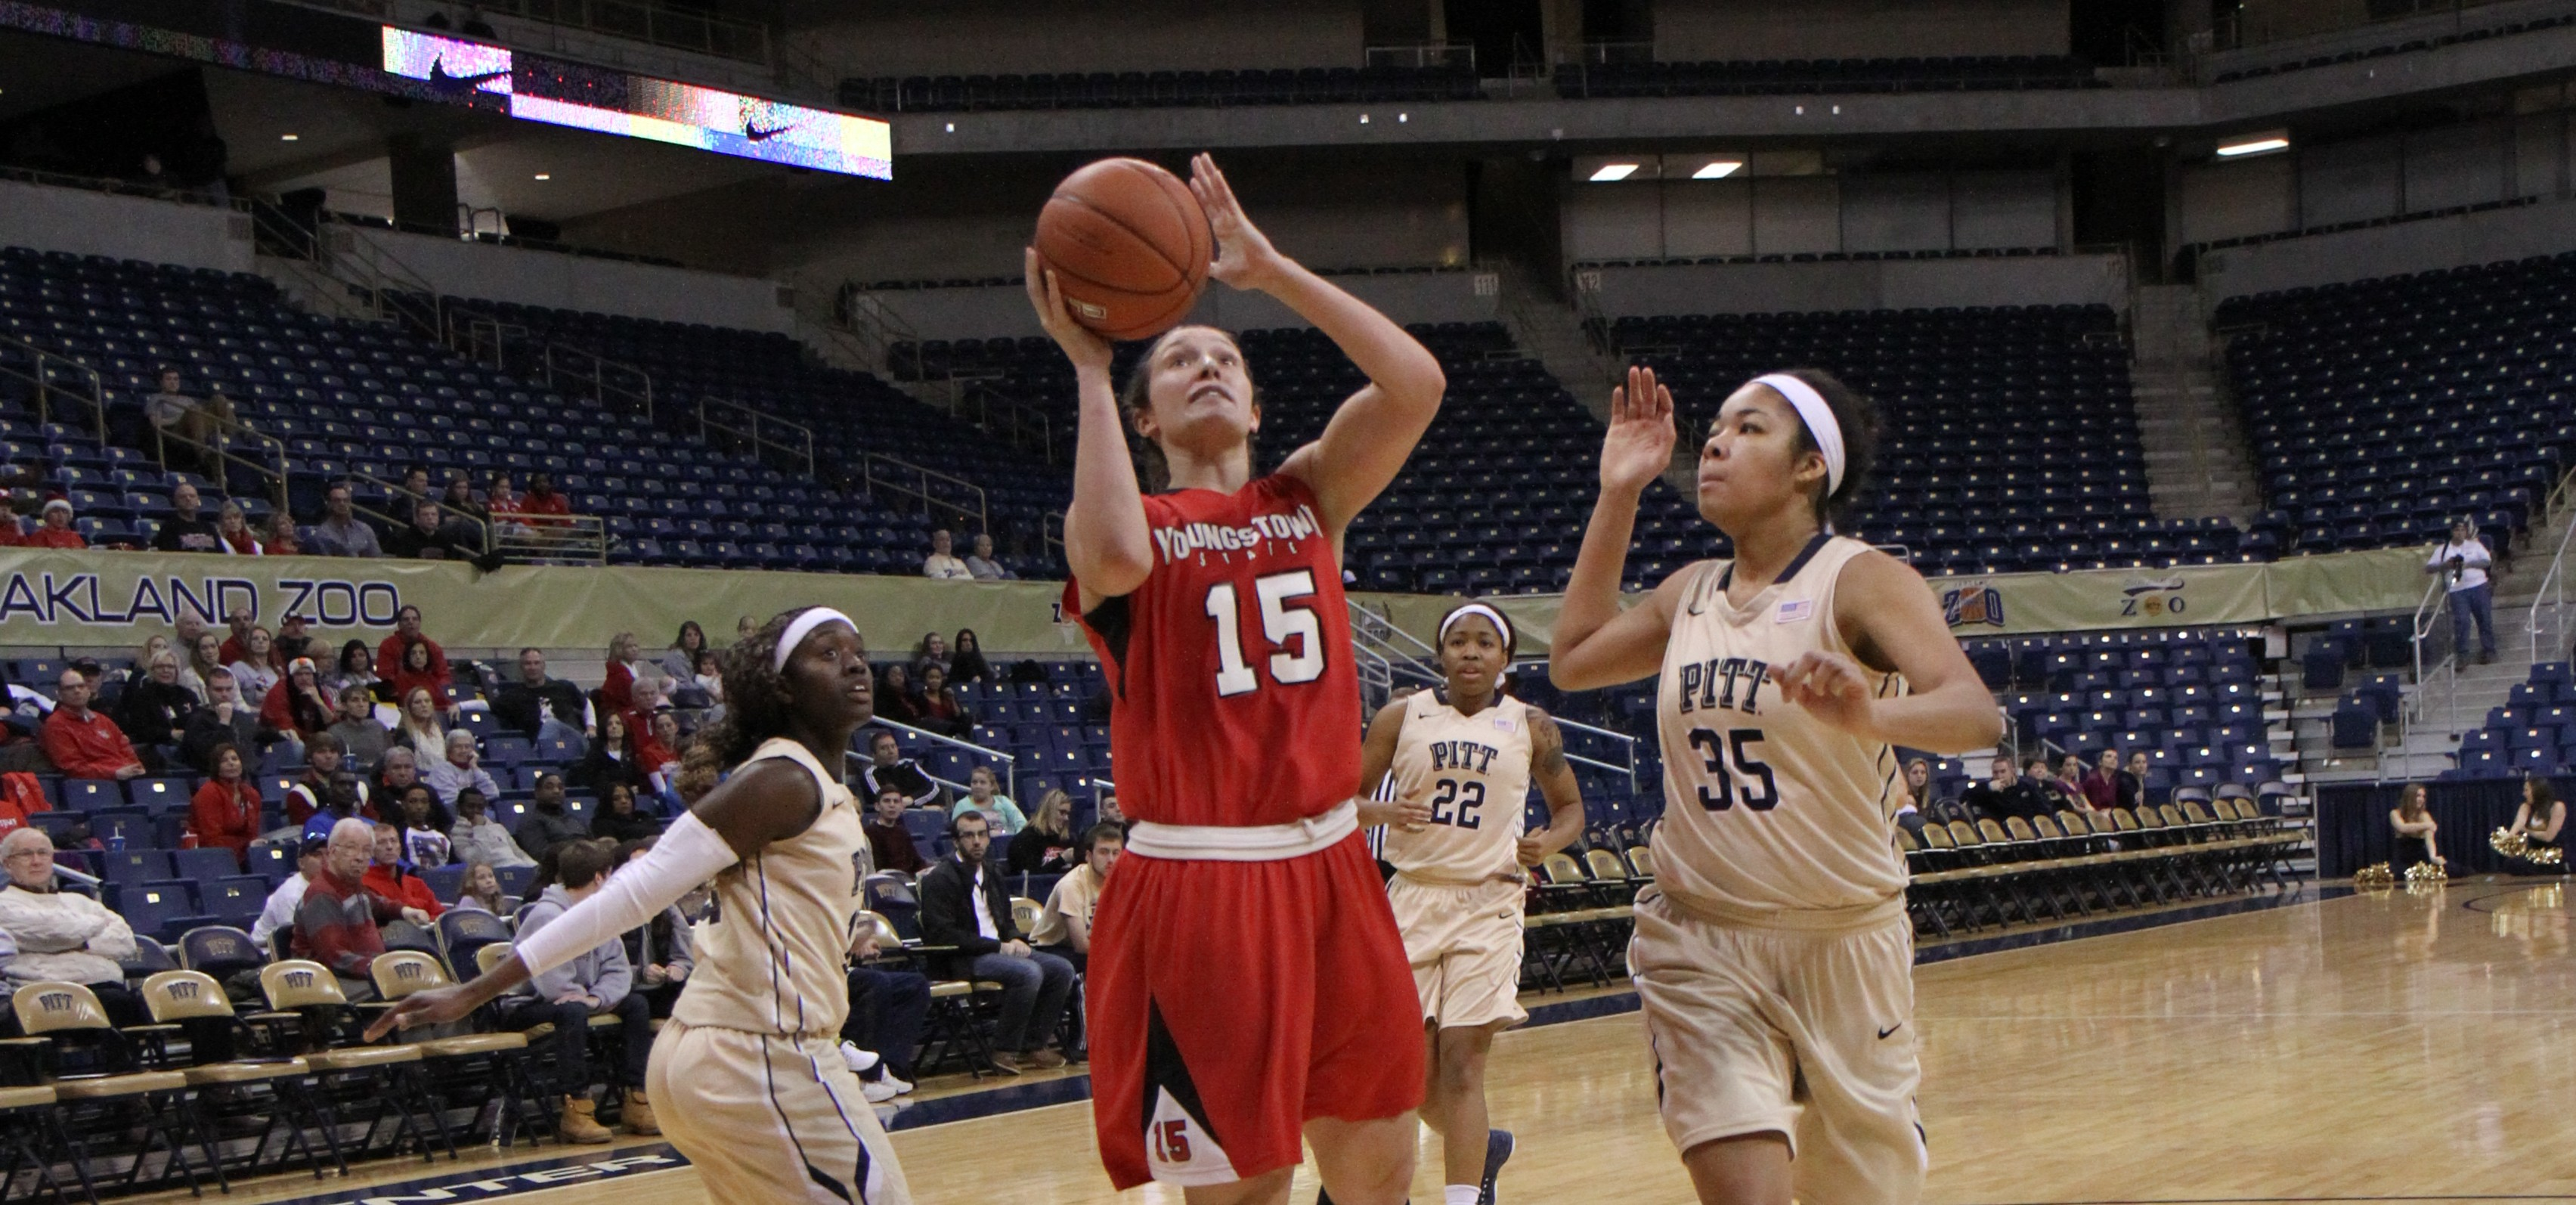 Senior Heidi Schlegel (15) drives for a layup during the Penguins' game against the University of Pittsburg on Dec. 21, 2014. Schlegel scored 20 points against the Golden Bears on Feb. 11, 2015. Photo courtesy of YSU Sports Information.